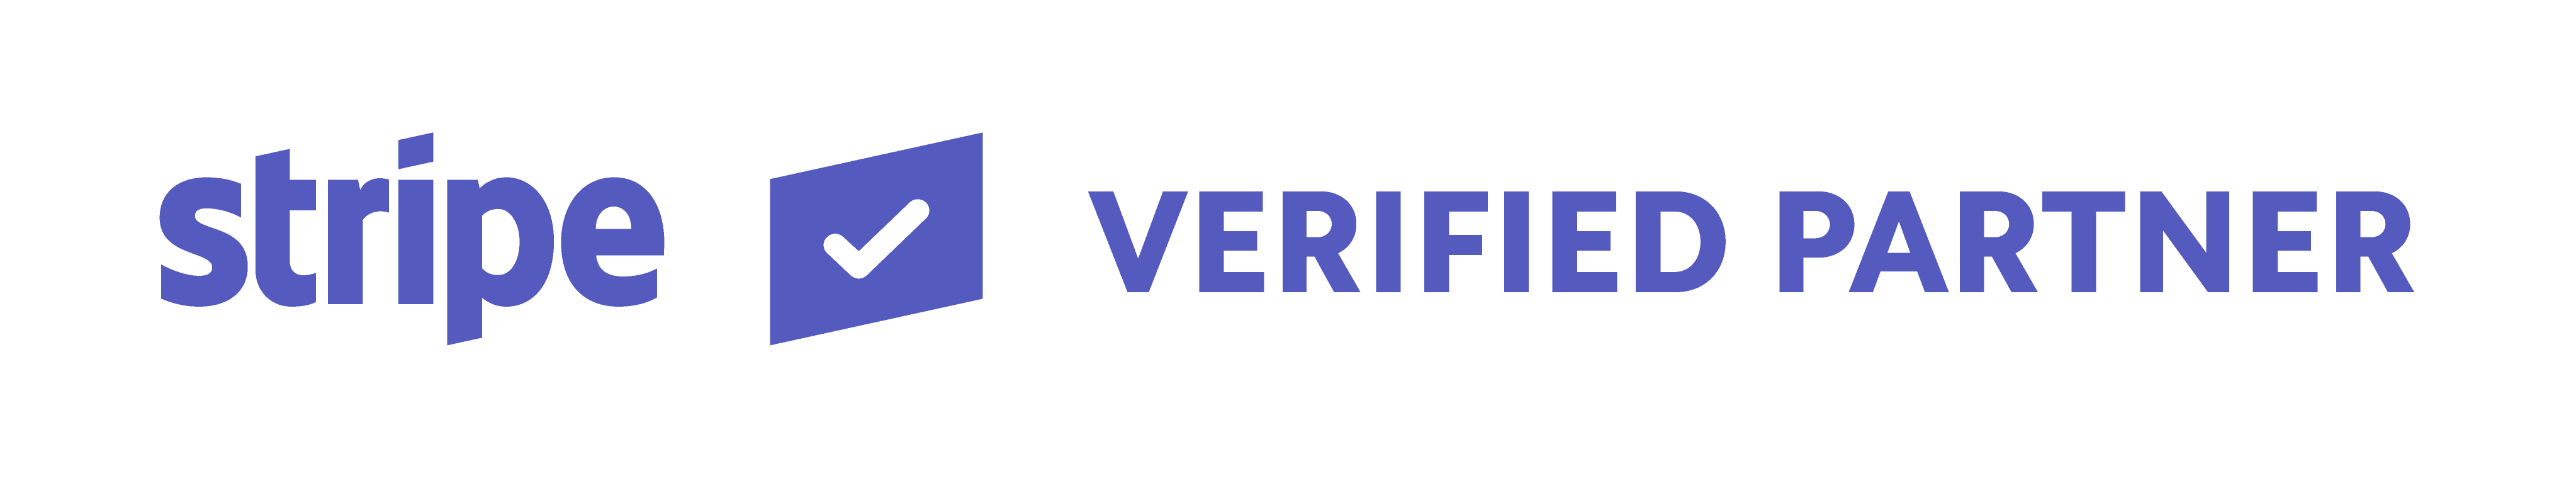 Stripe Verified Partner Tag